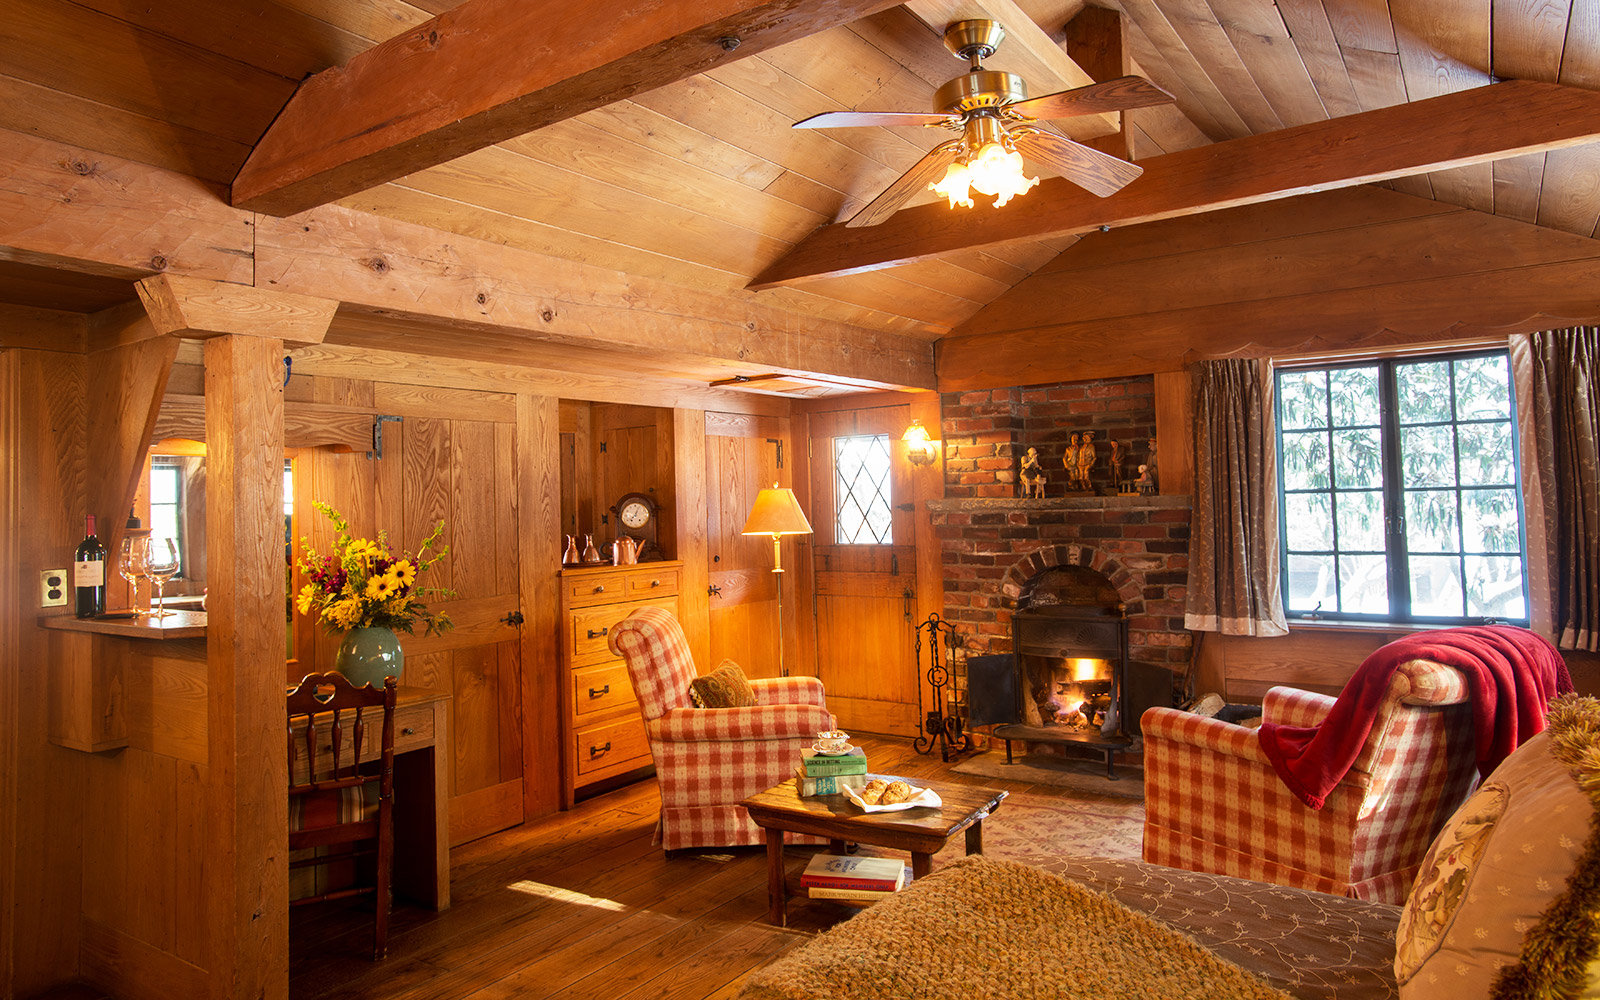 The Lodge at Glendorn in Pennsylvania